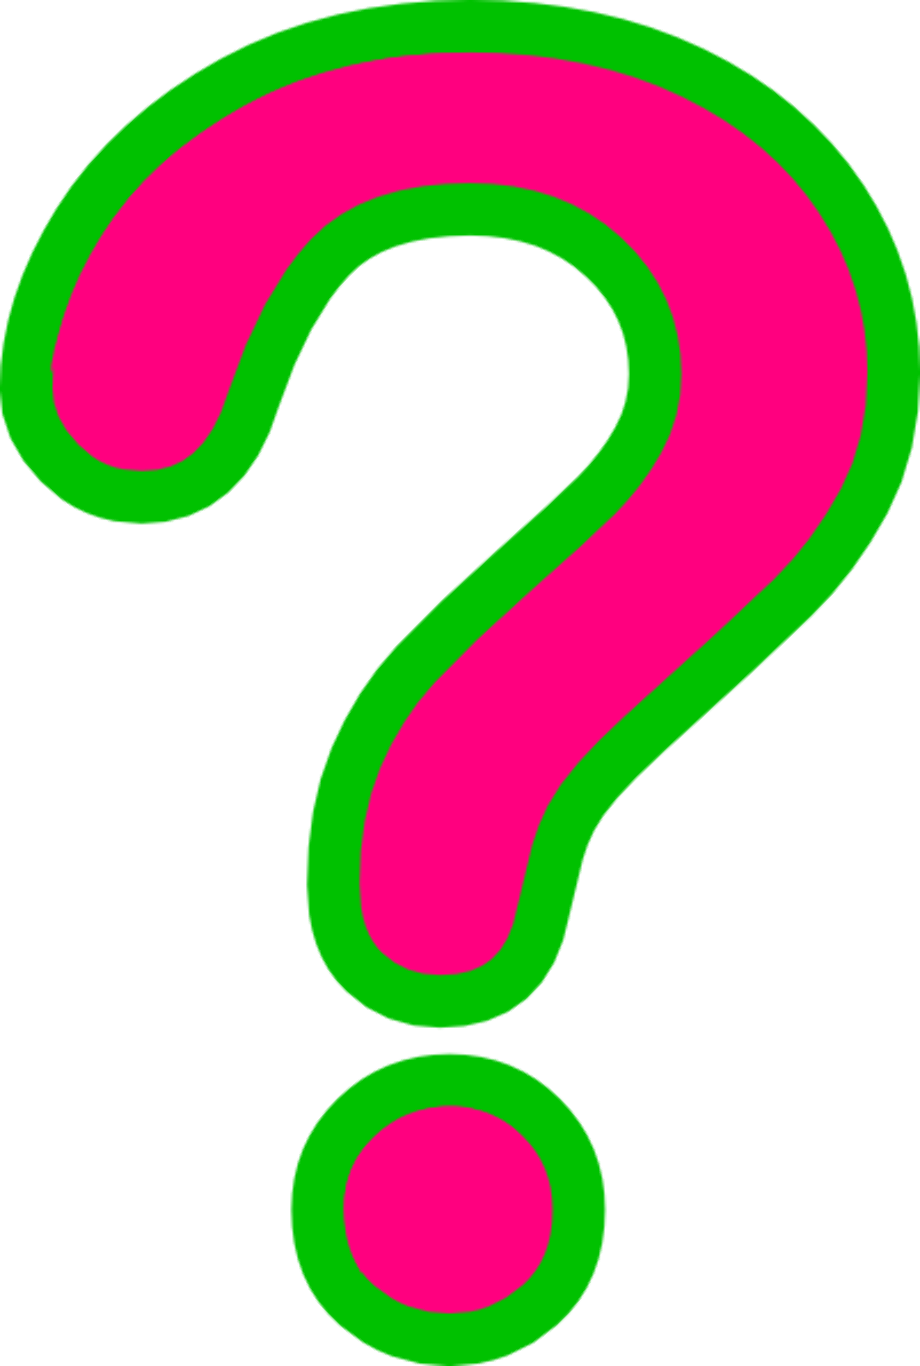 Question mark clipart green animated